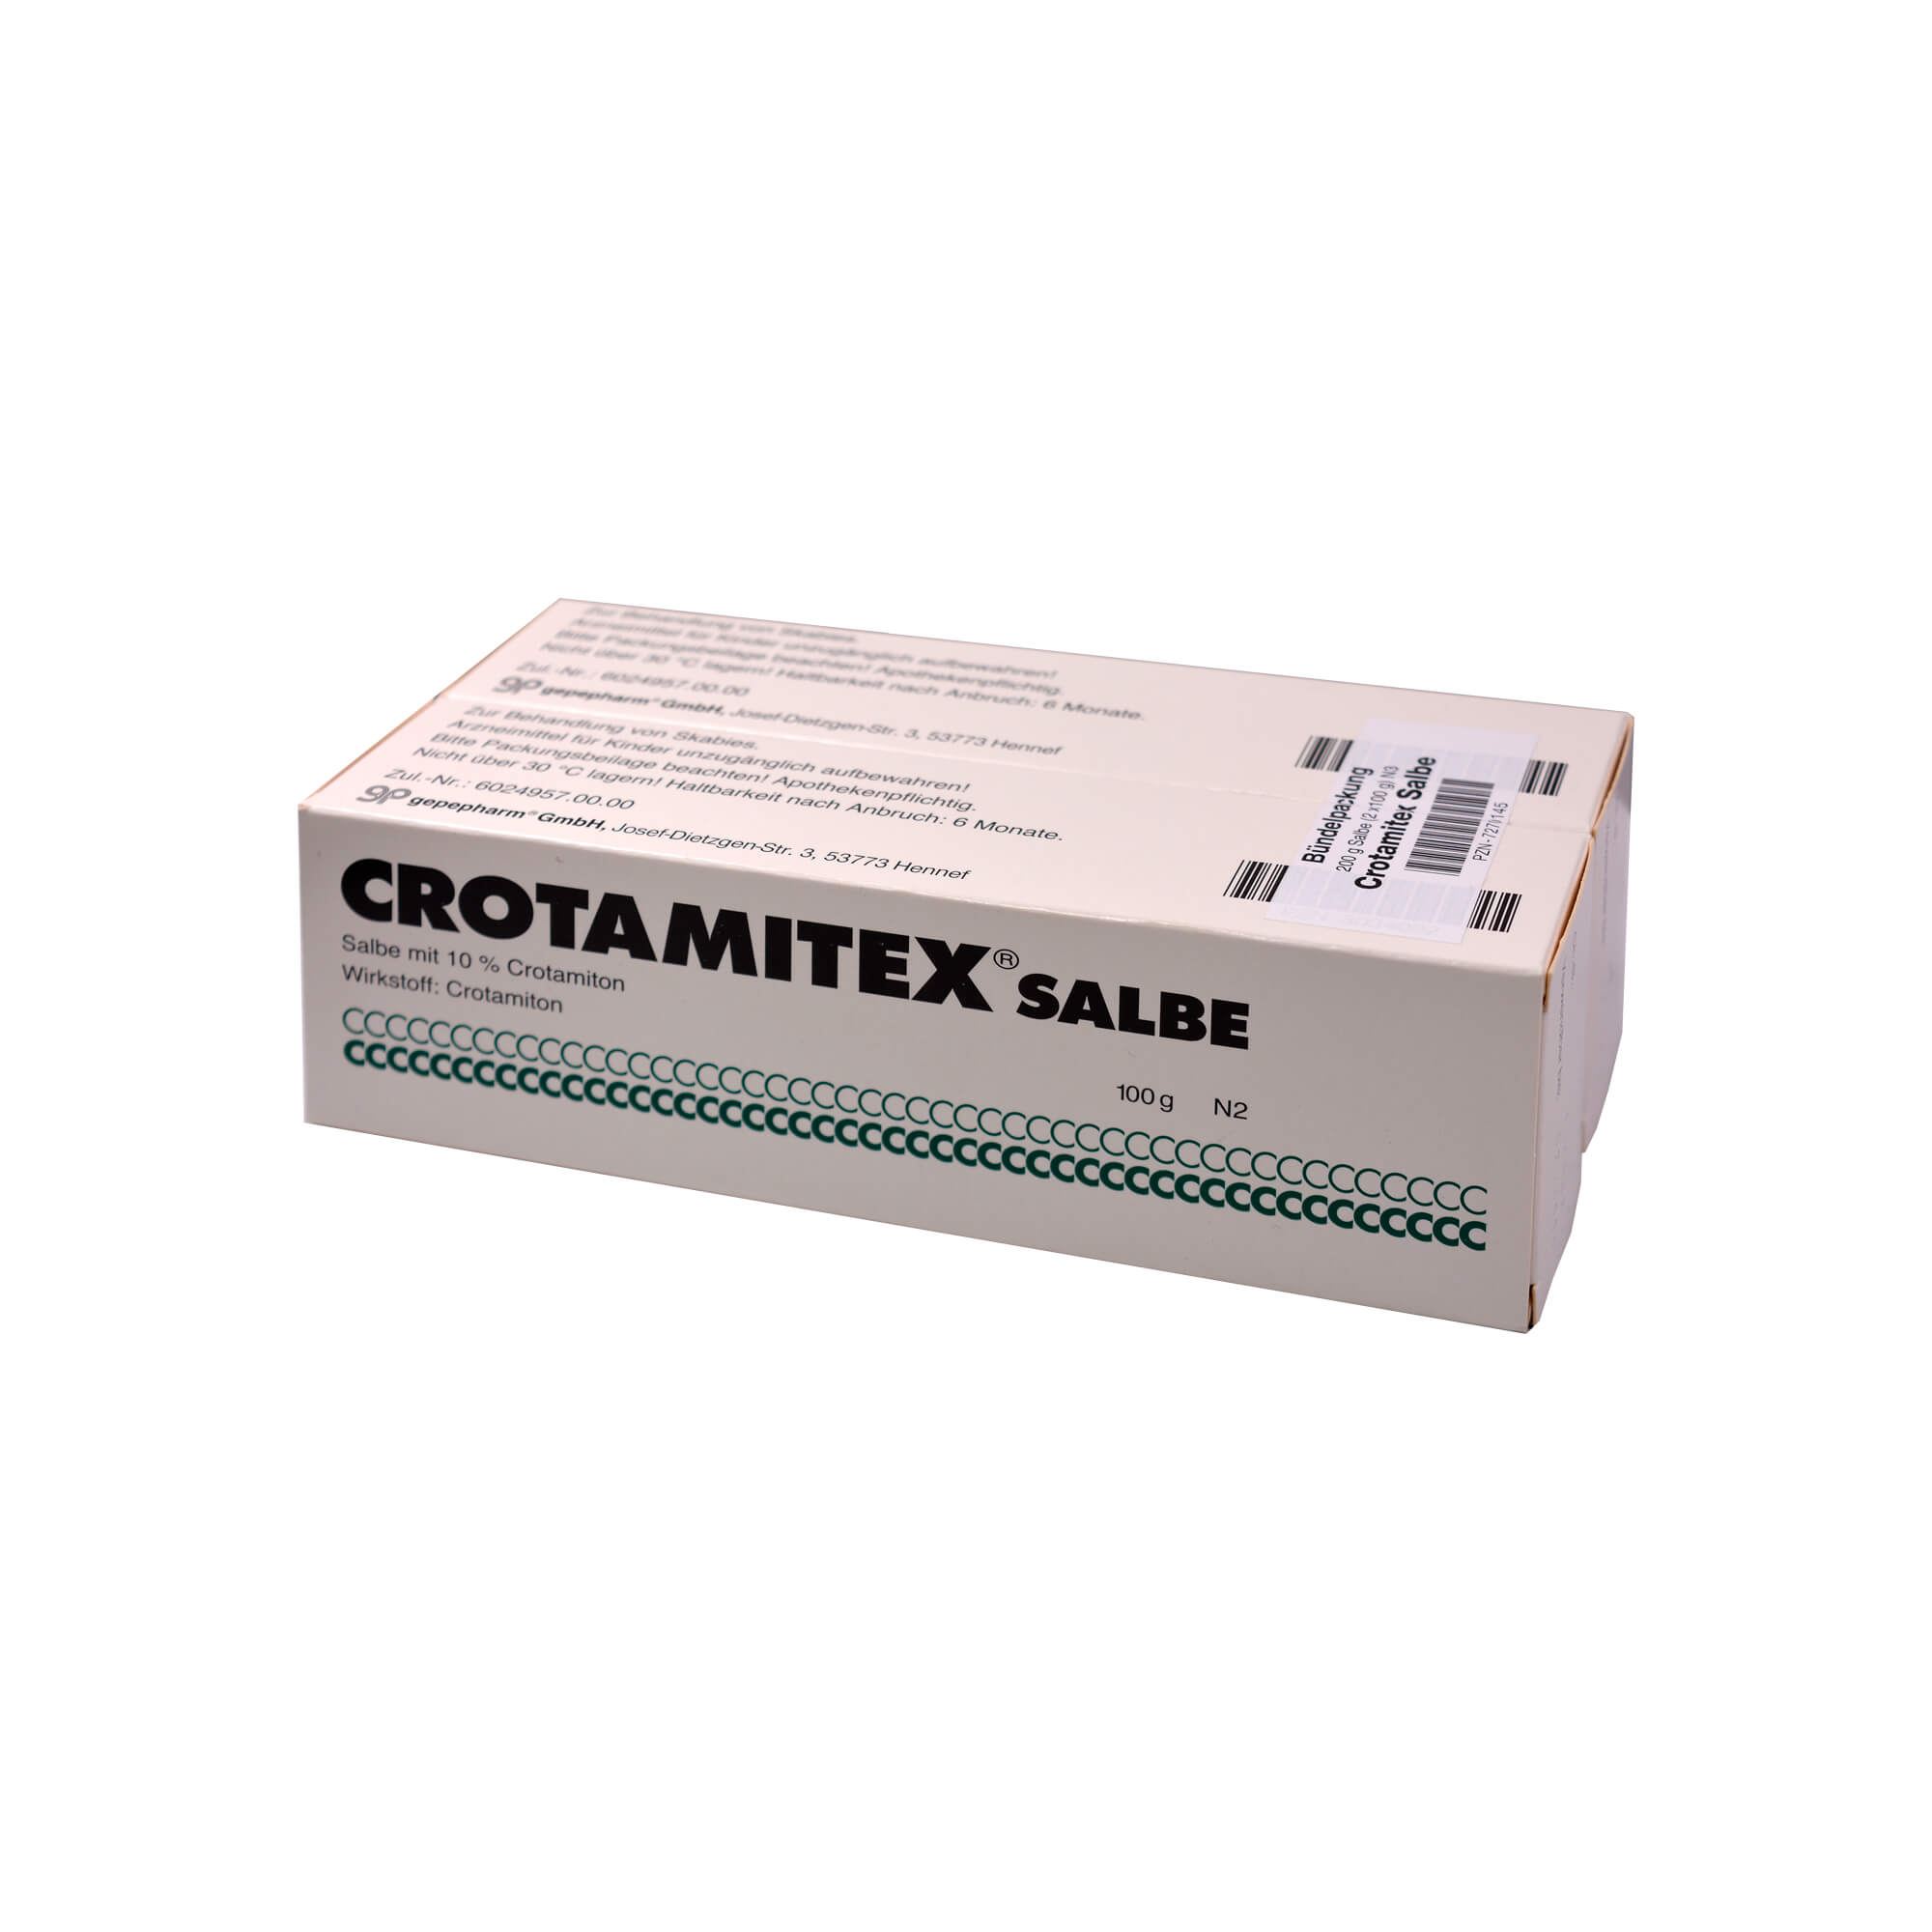 Crotamitex Salbe